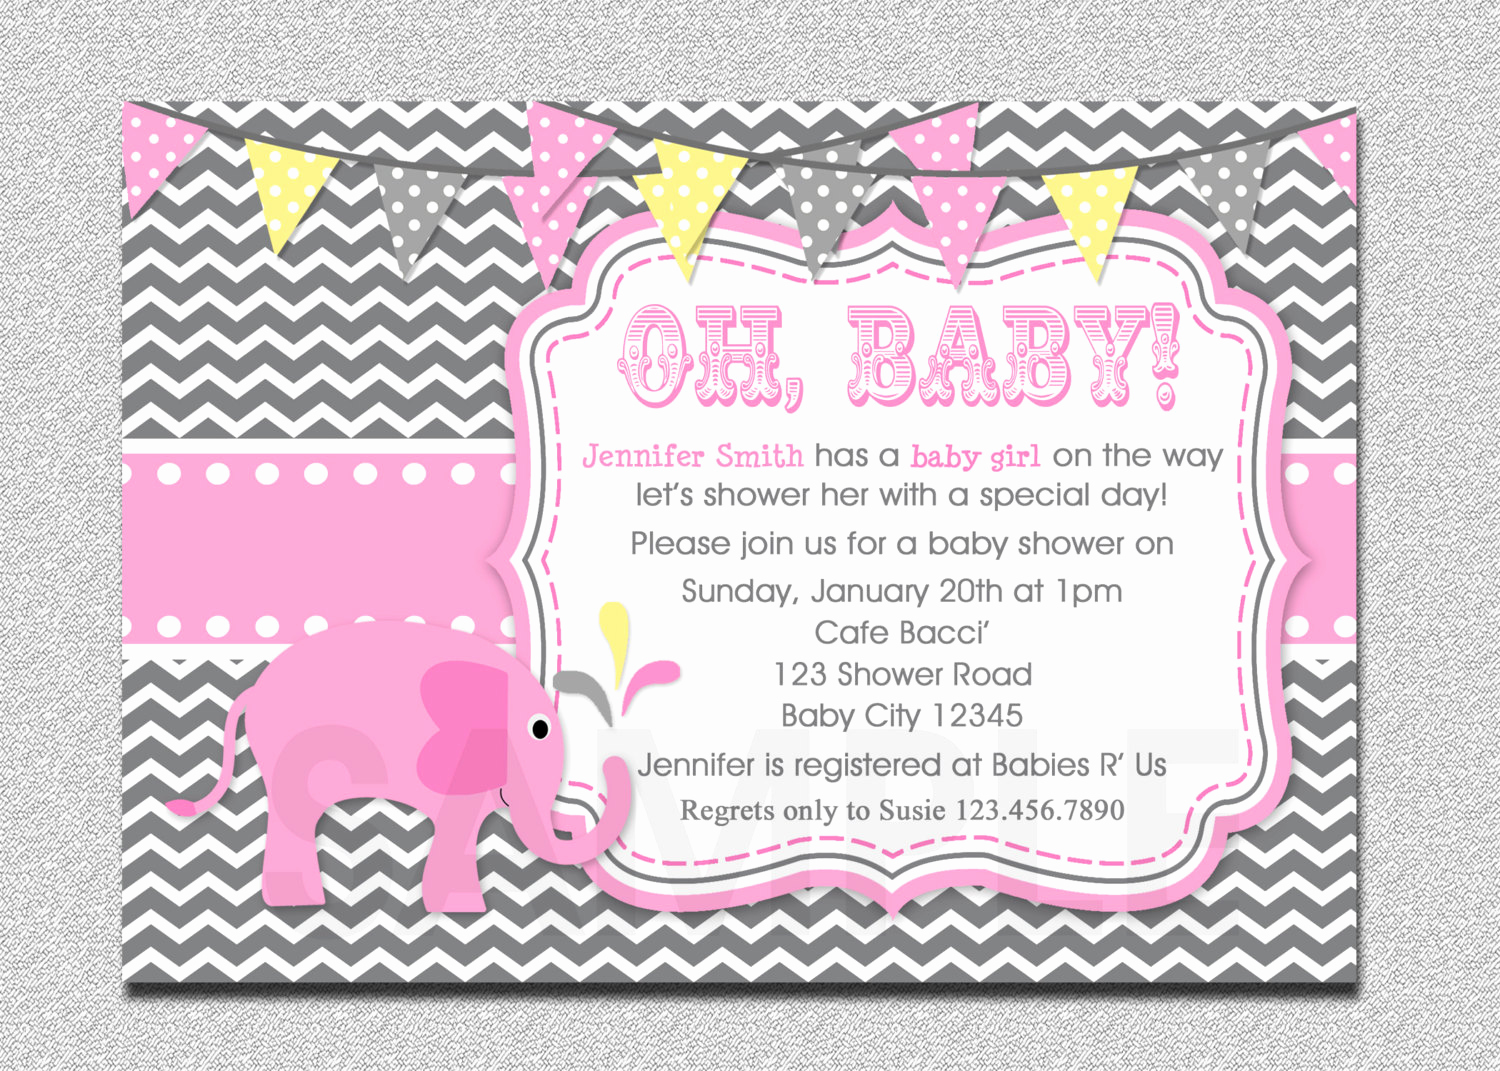 Elephant Invitation Baby Shower Elegant Elephant Baby Shower Invitation Elephant Shower Invitation